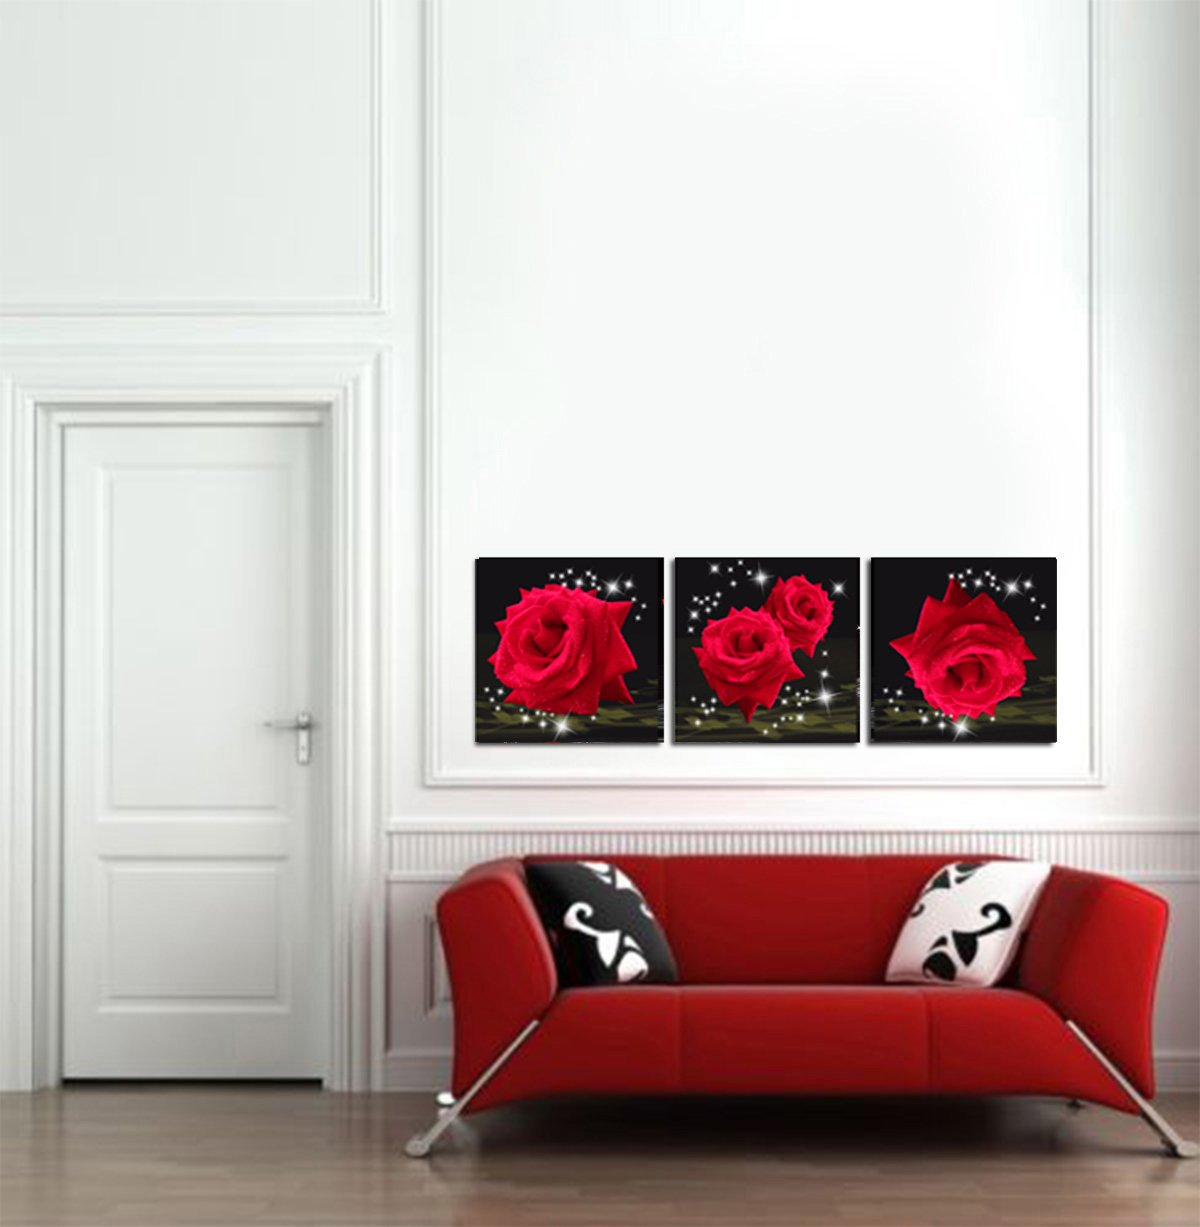 Mon Art Love Of Red Roses Modern Decorative Wall Canvas Set Of 3(UnStretched and UnFramed) by Mon Art (Image #3)